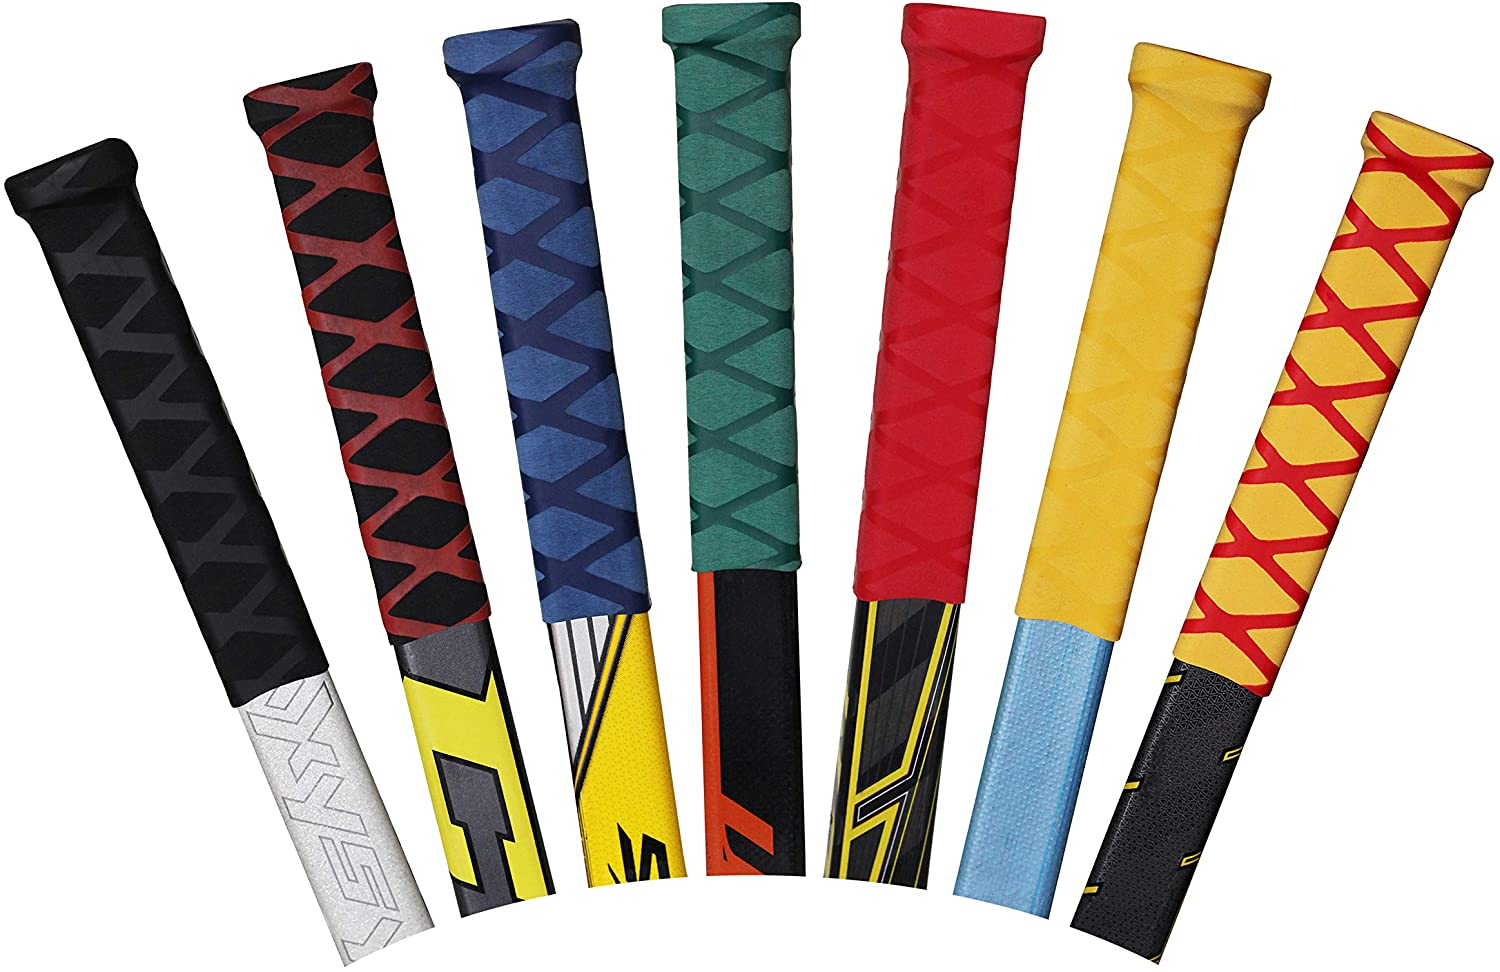 Advanced Hockey Stick Grip - Grip for ice Hockey Sticks, one Size for Youth and Adult Stick, Great Alternative to Hockey Tape (Black) : Sports & Outdoors